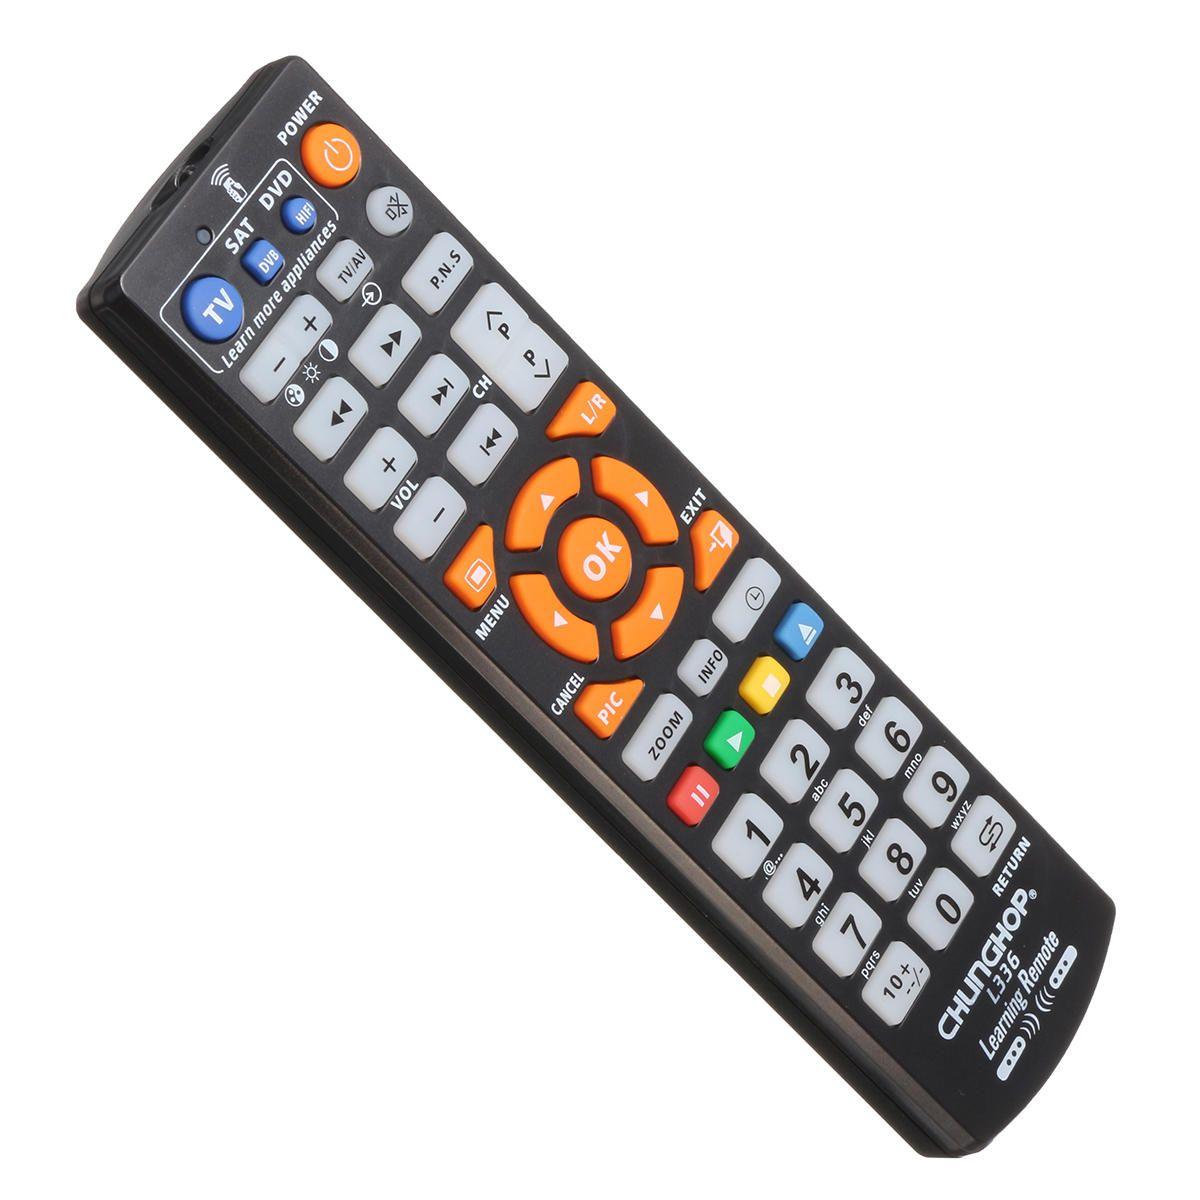 32c1abb006f [US$7.99] CHUNGHOP L336 Universal Learning Remote Control Controller With  Learn Function For TV CBL DVD SAT #chunghop #l336 #universal #learning # remote ...